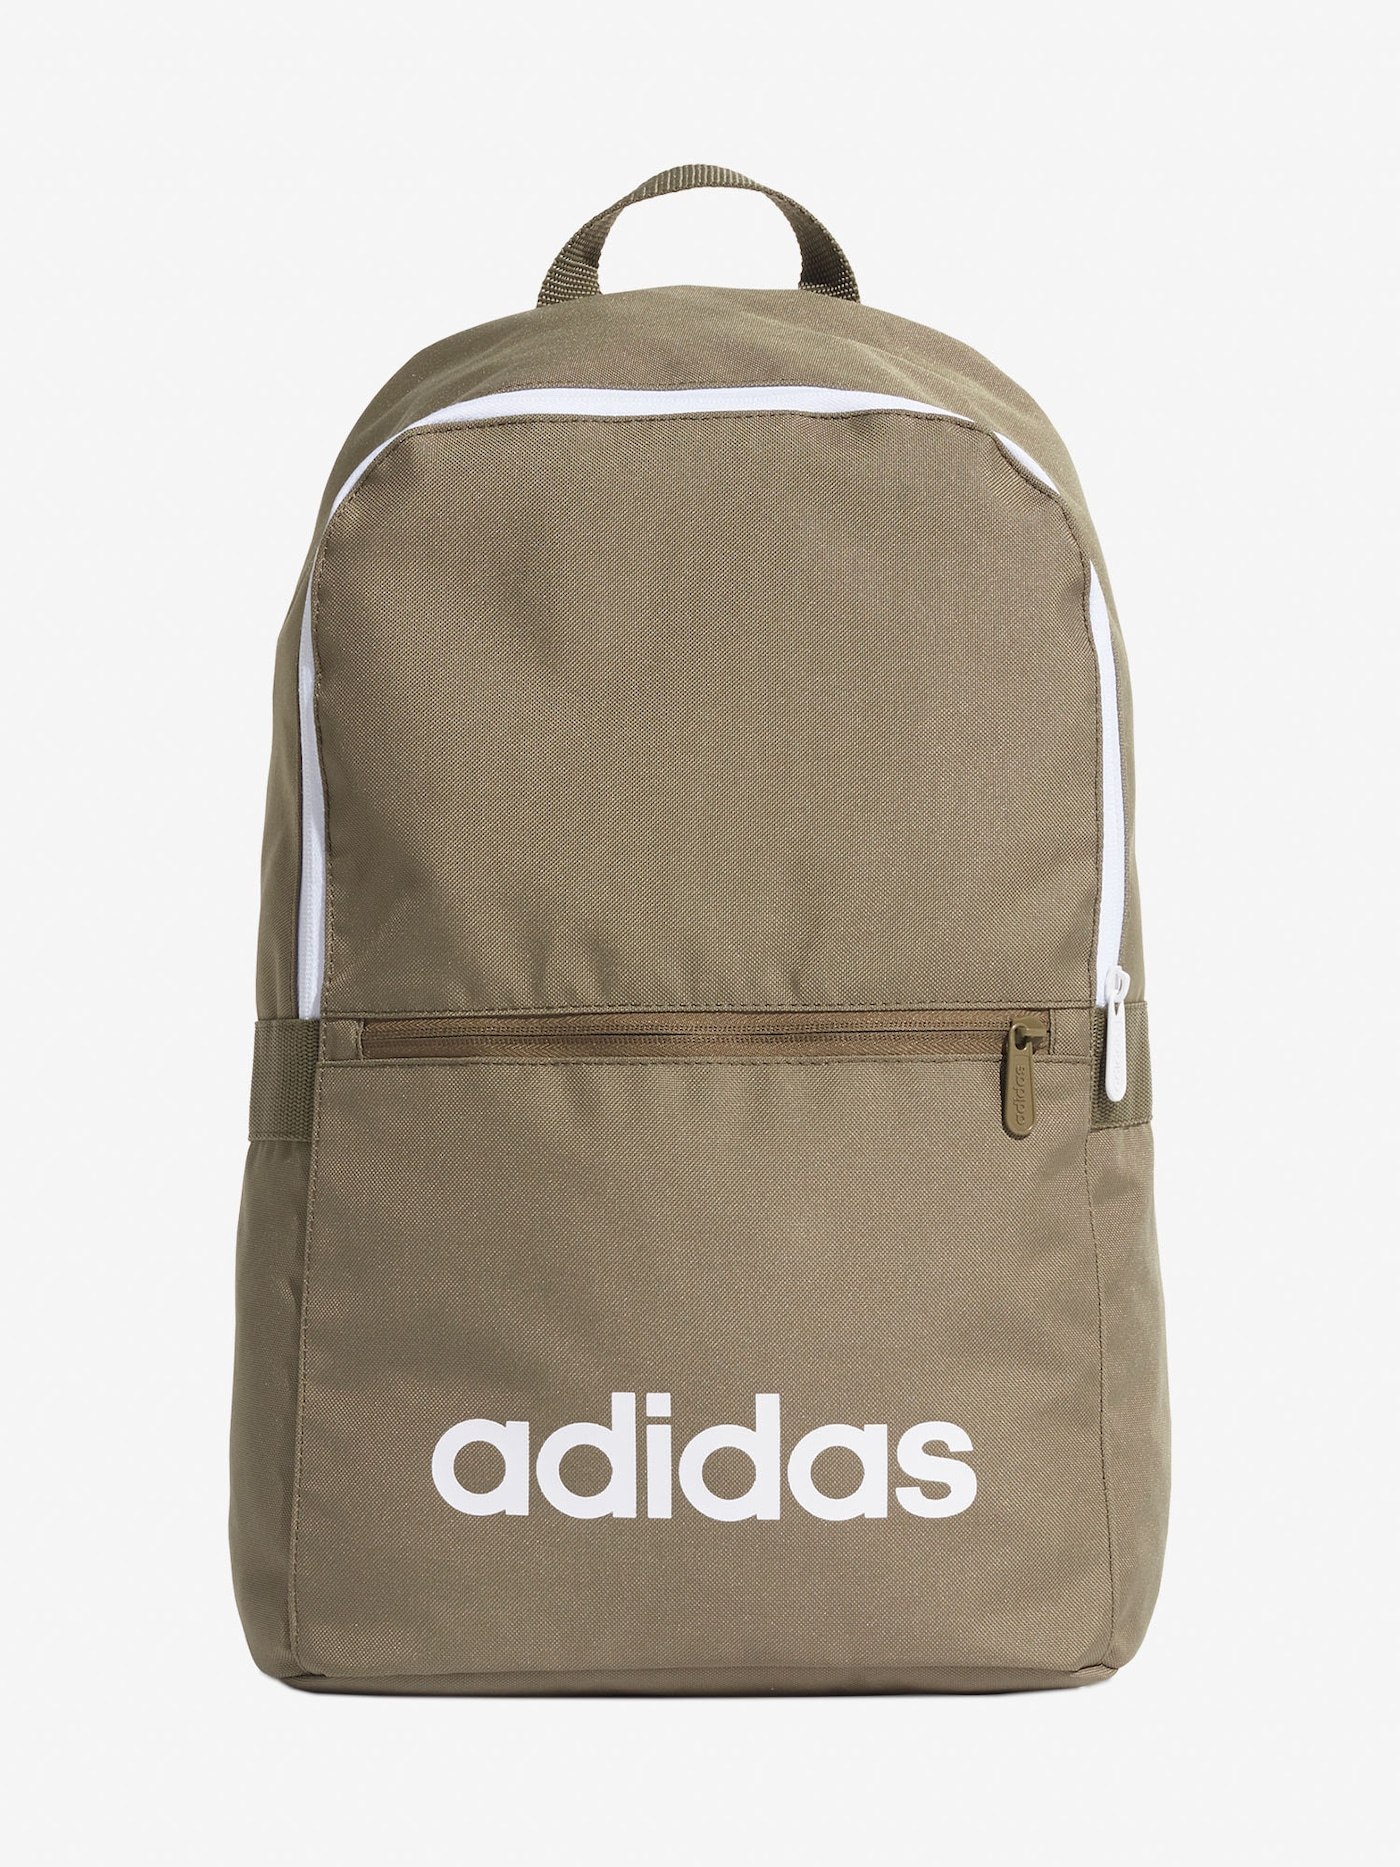 Adidas Performance Lin Clas Bp Day Backpack